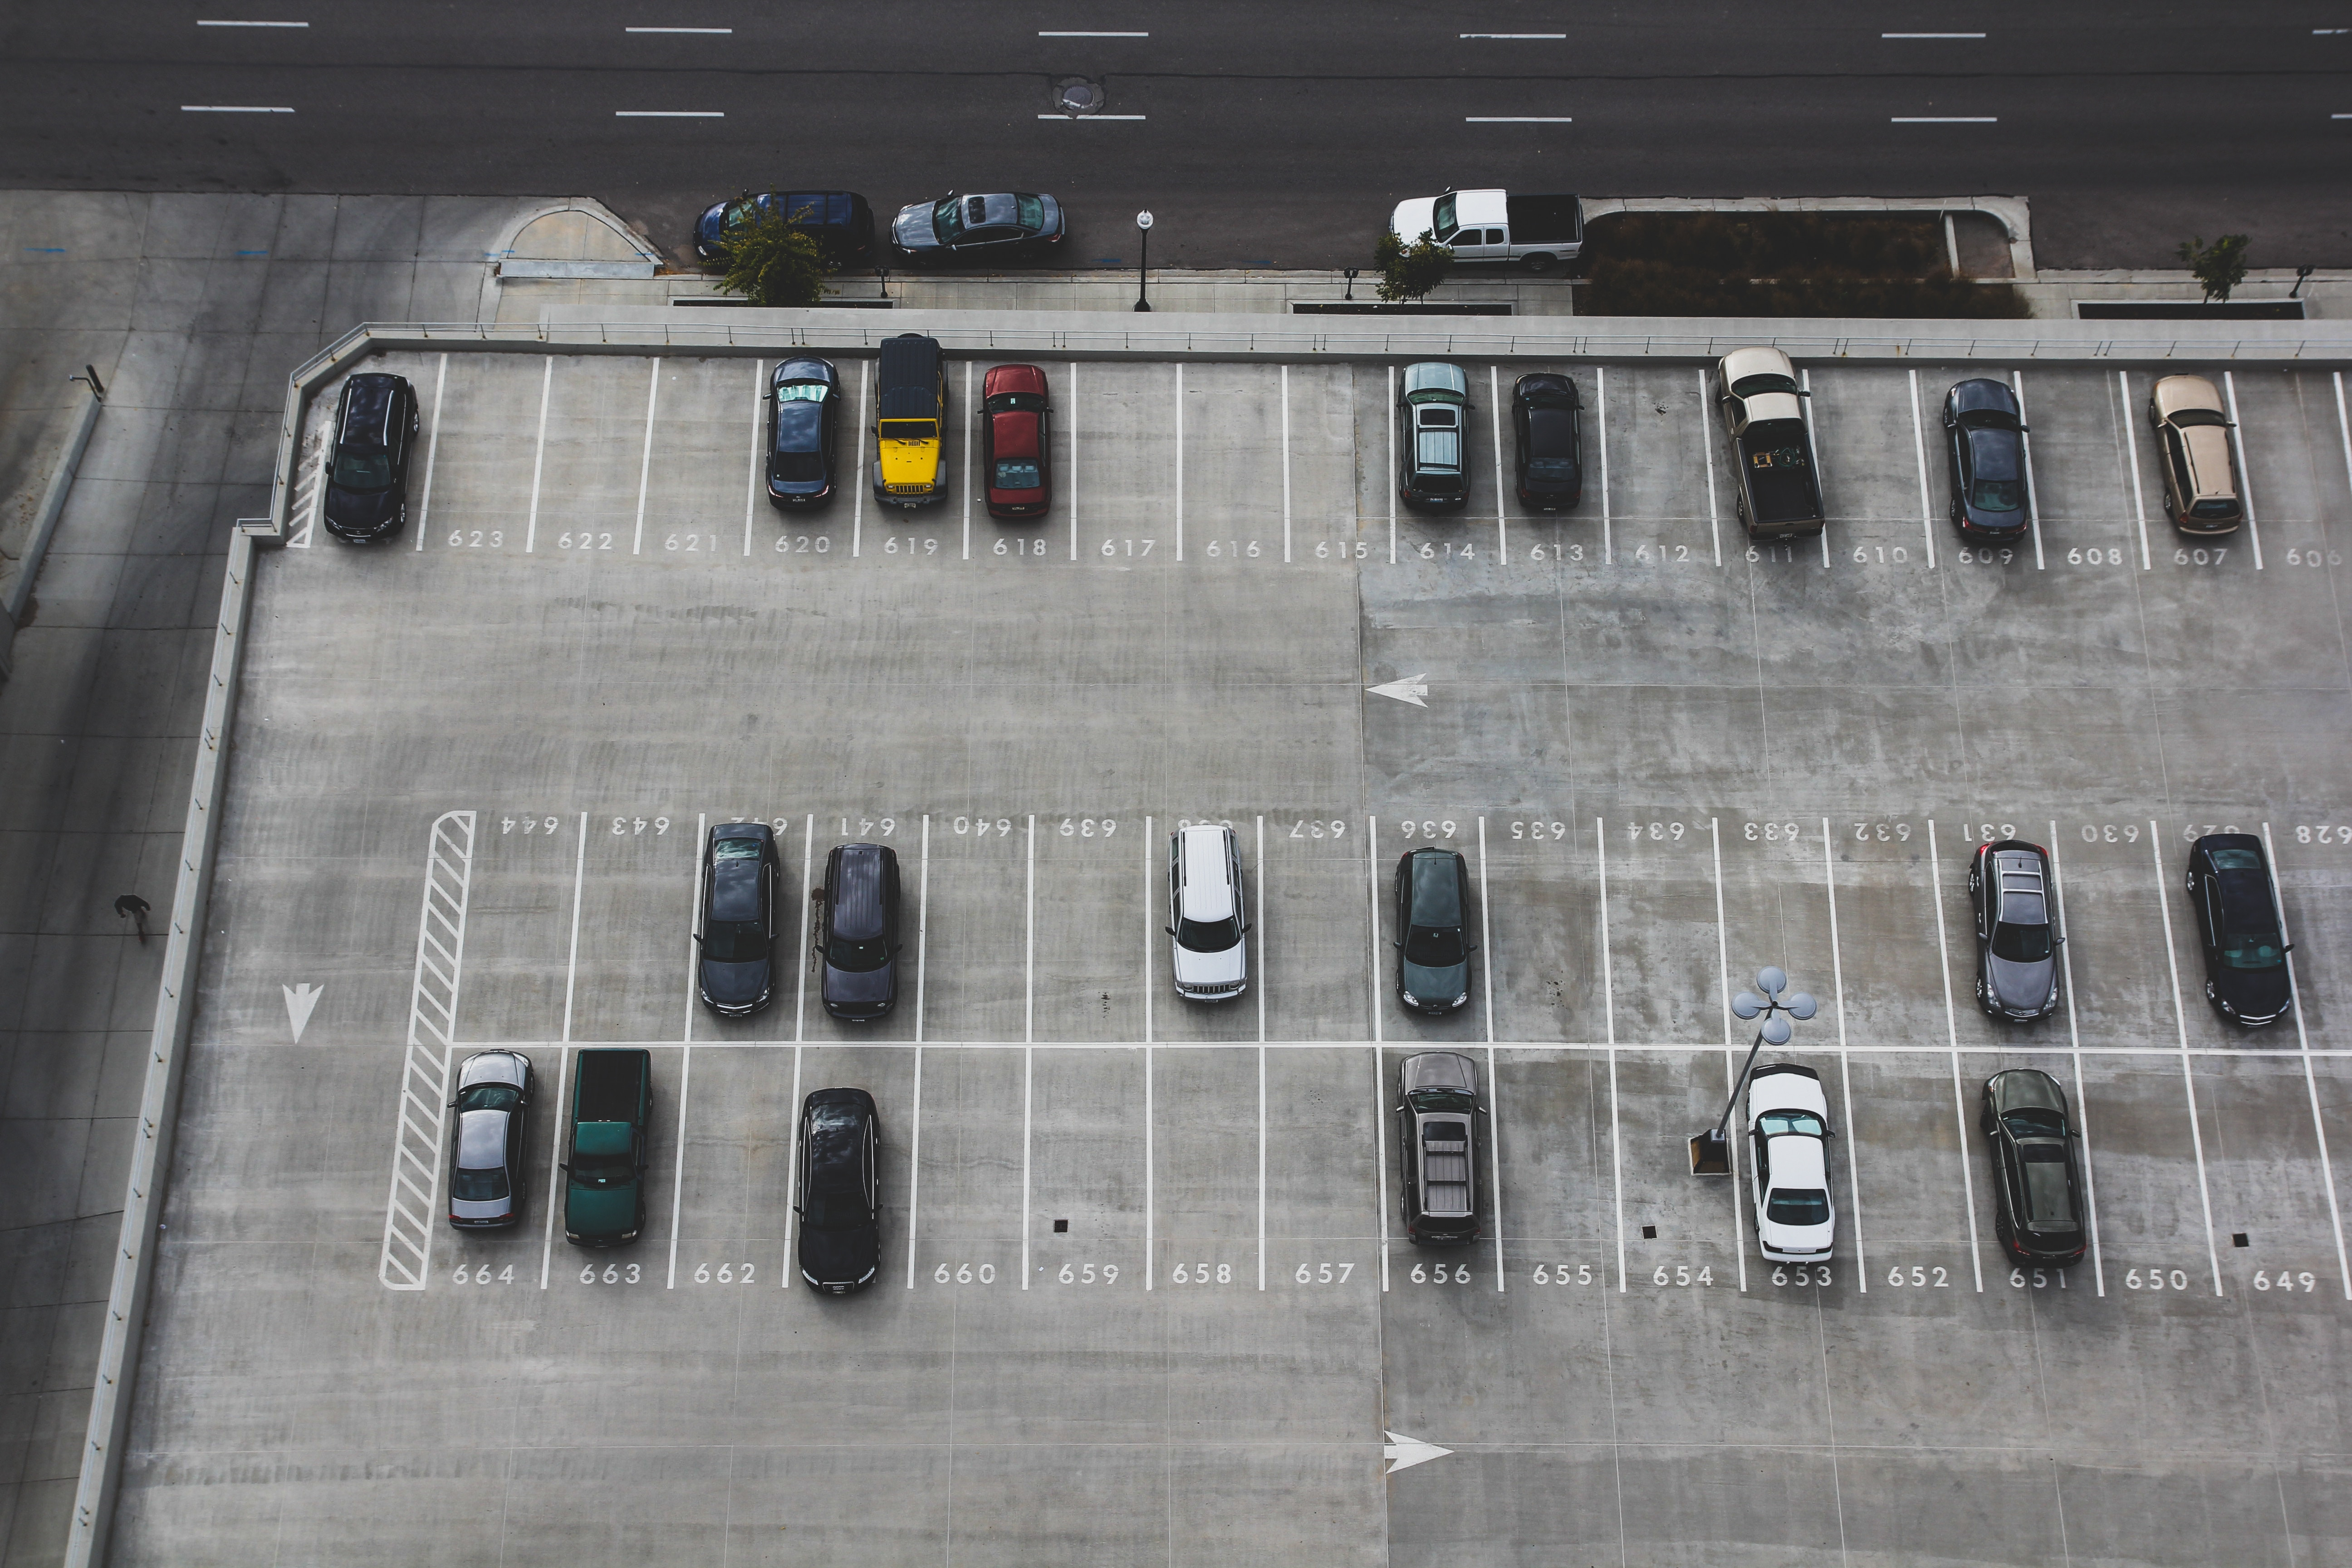 Information about parking and transportation during the conference